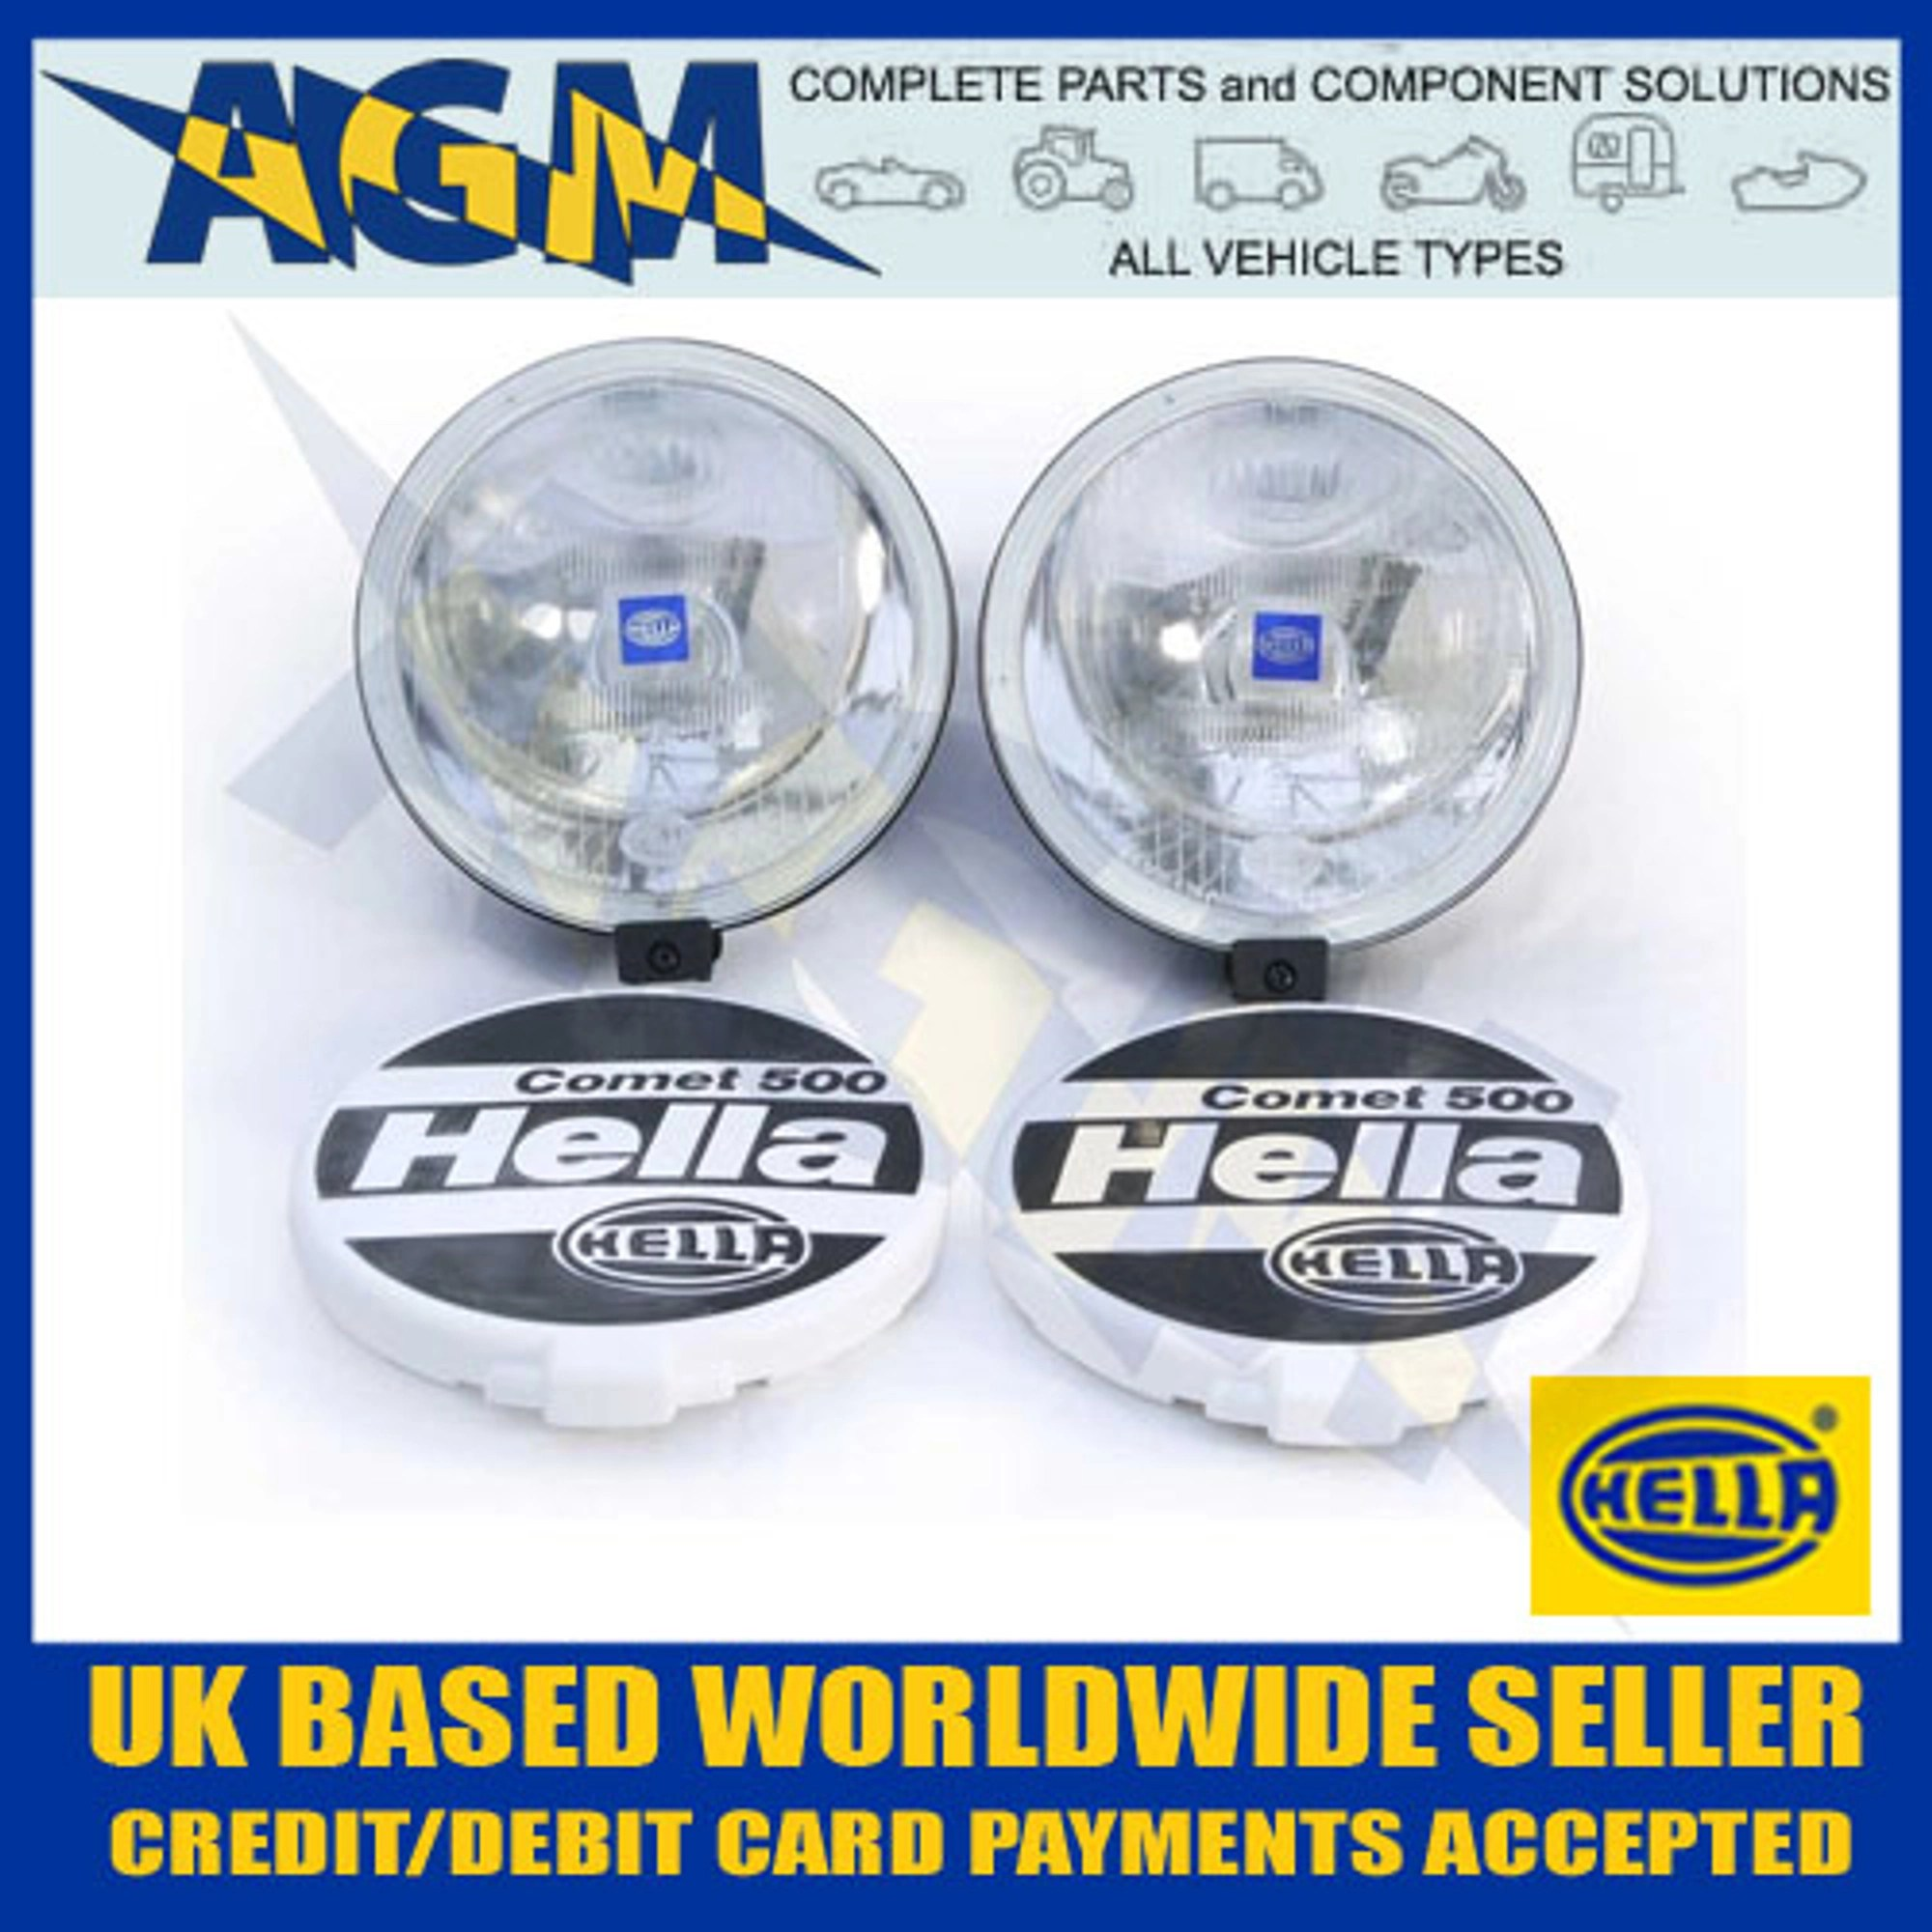 hight resolution of hella comet 500 lamp set with two lamps covers and fitting kit 1f4005750 731 s